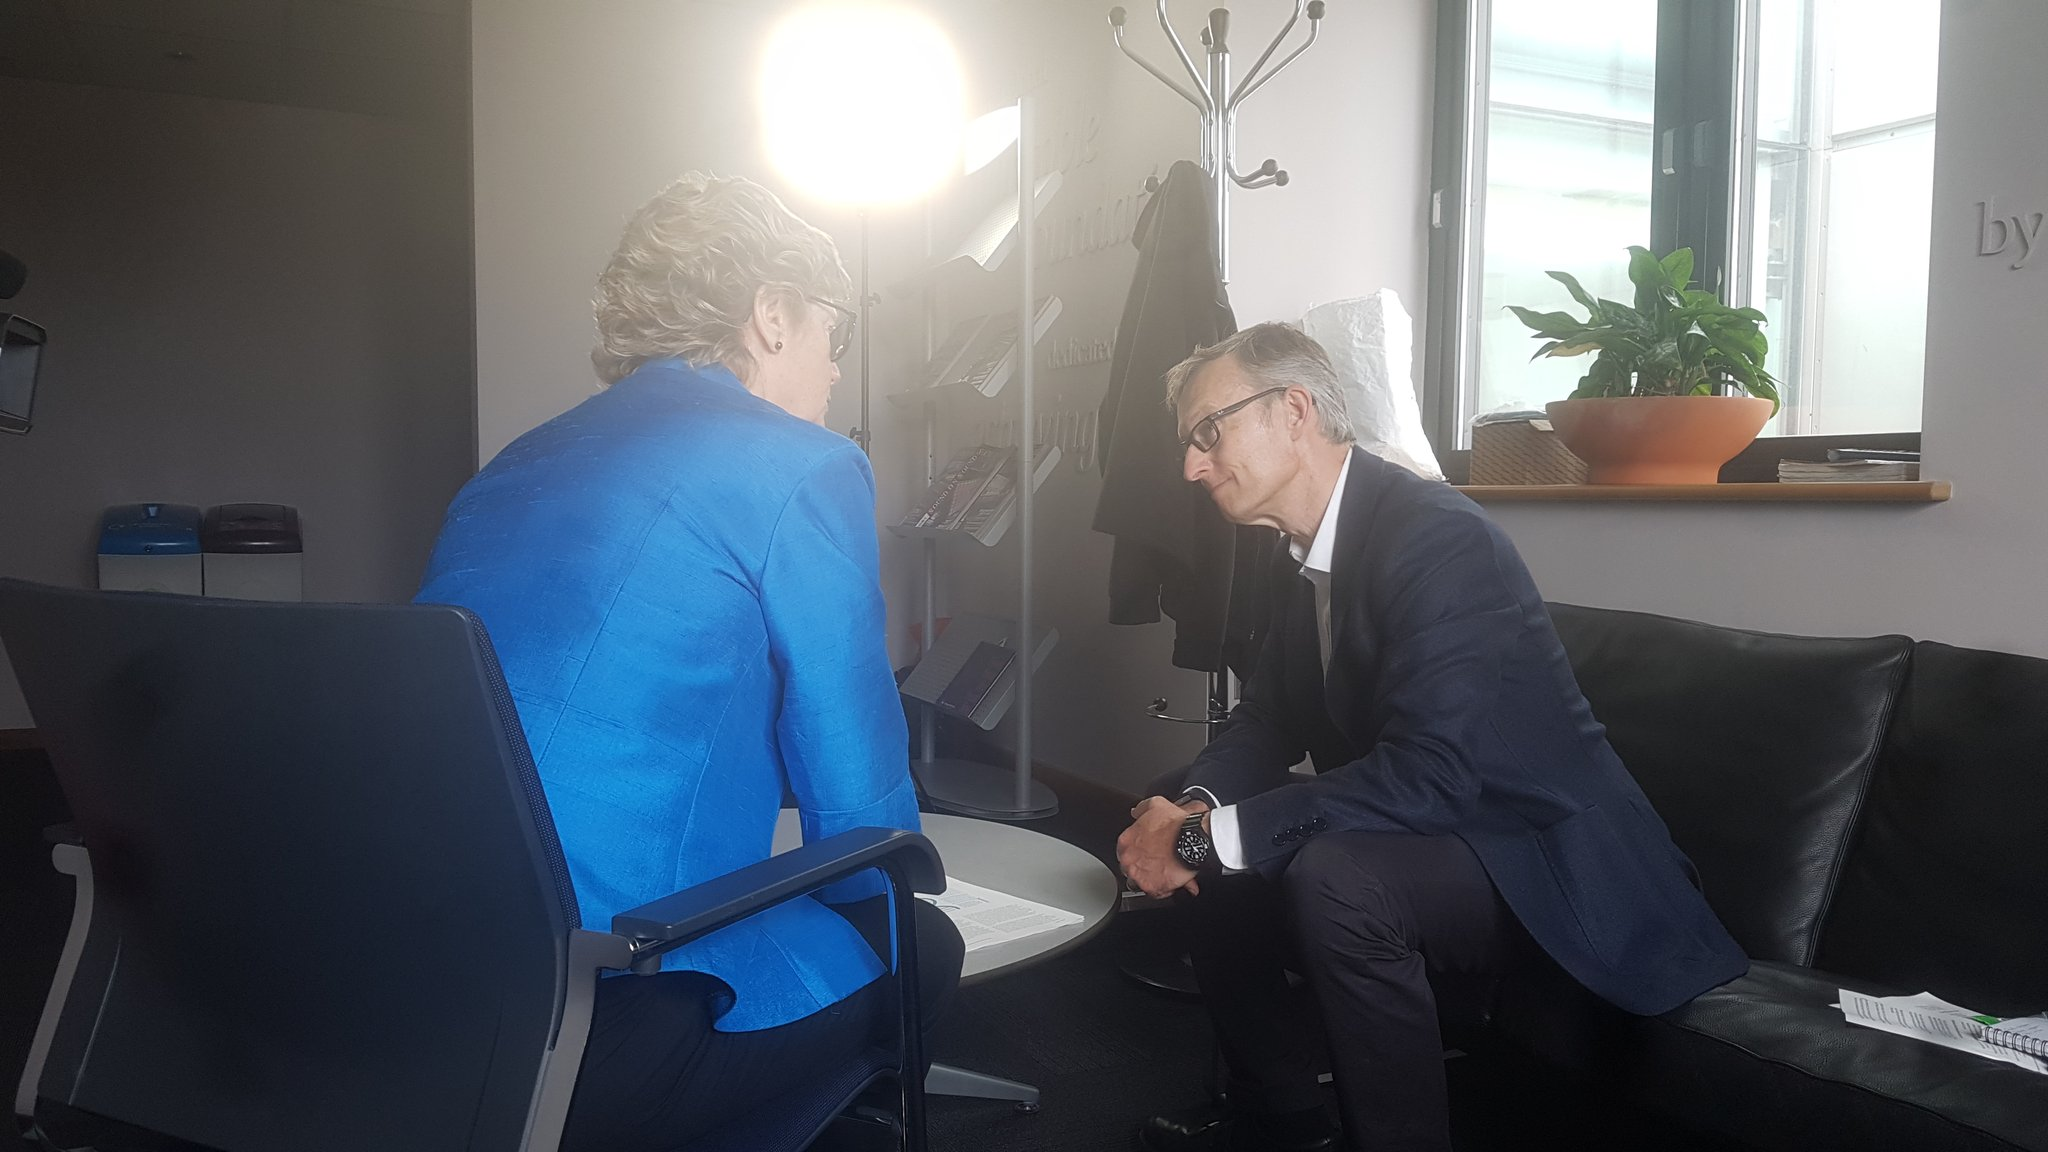 Professor Davies @CMO_England will be on BBC Breakfast shortly to discuss her #GenerationGenome report https://t.co/q37dvUMThG